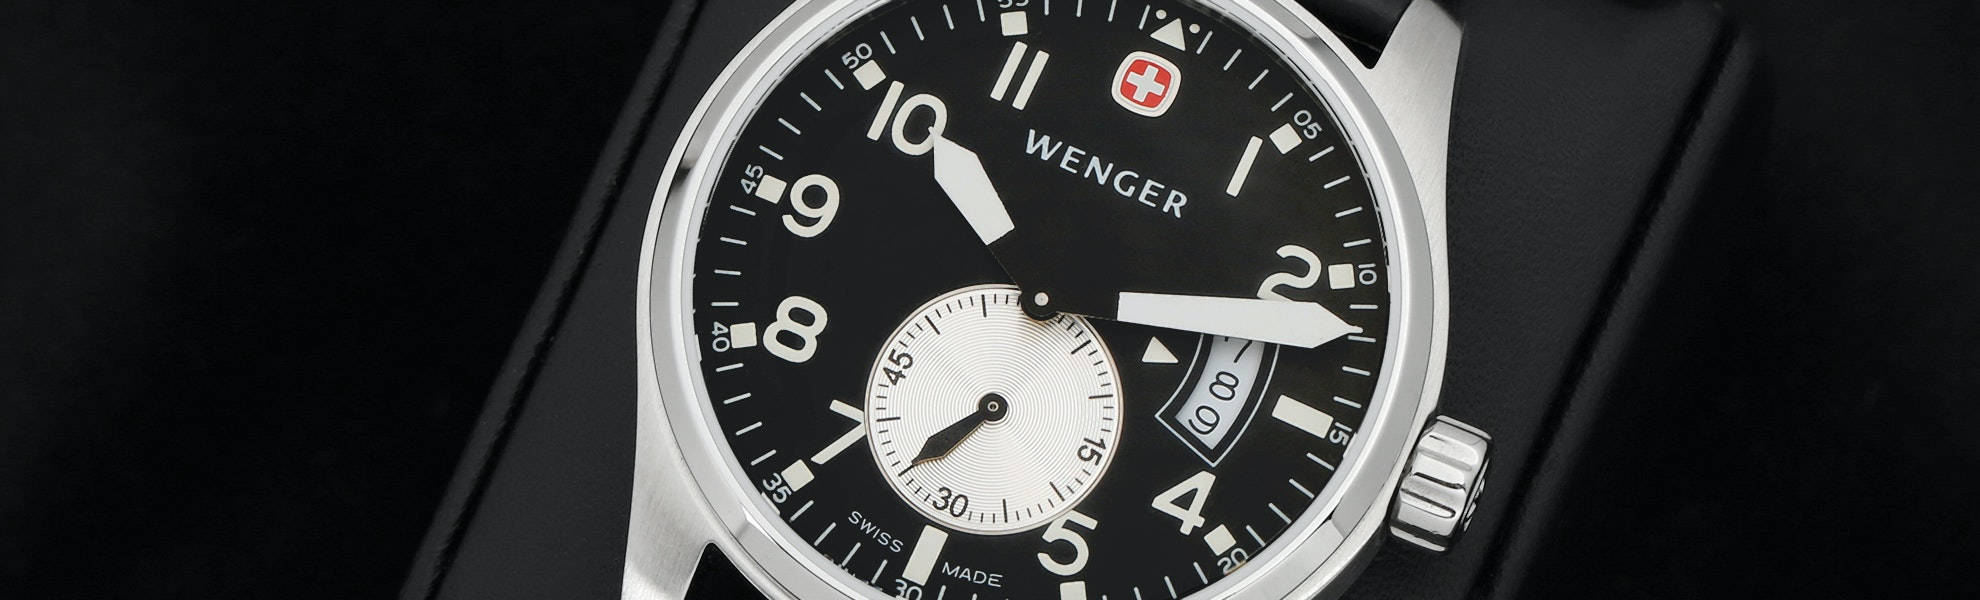 Wenger Aerograph XL Watch